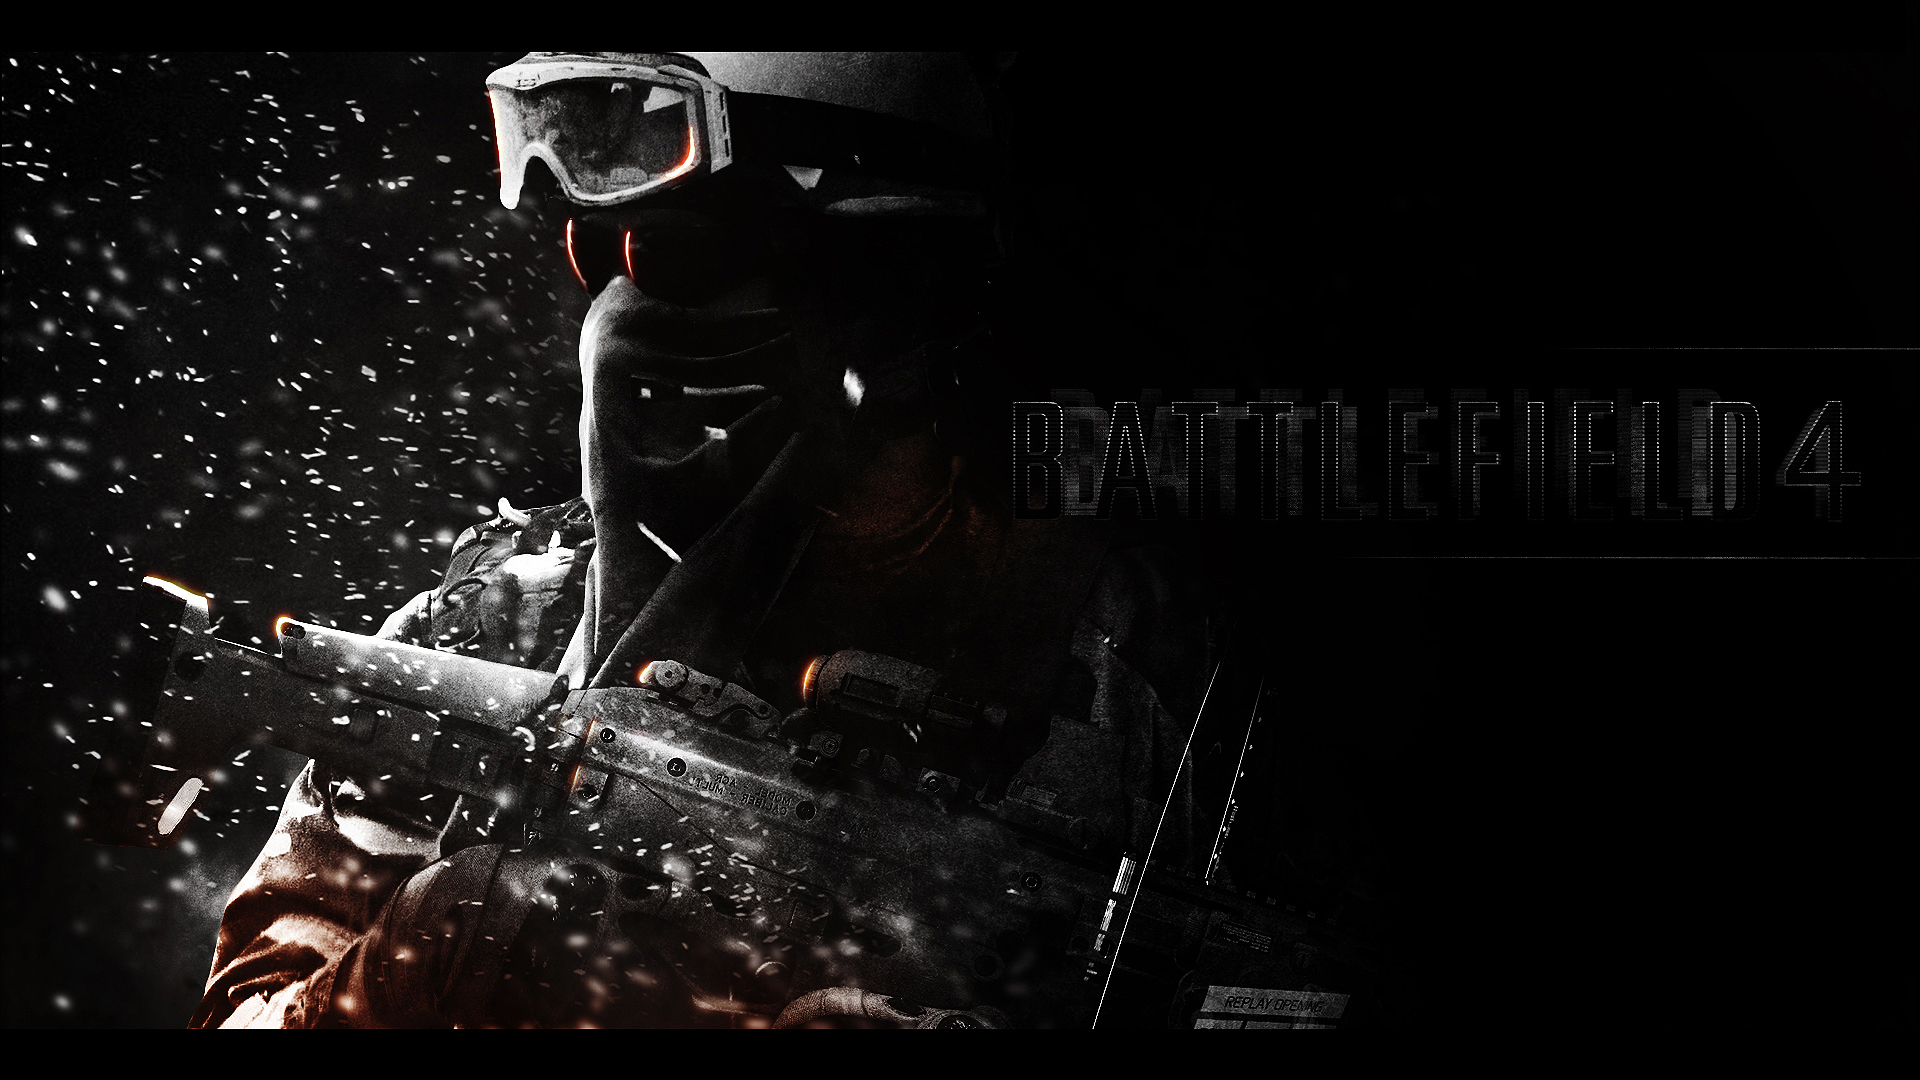 Battlefield4 explore battlefield4 on deviantart battlefield 4 wallpaper by rykouy voltagebd Images